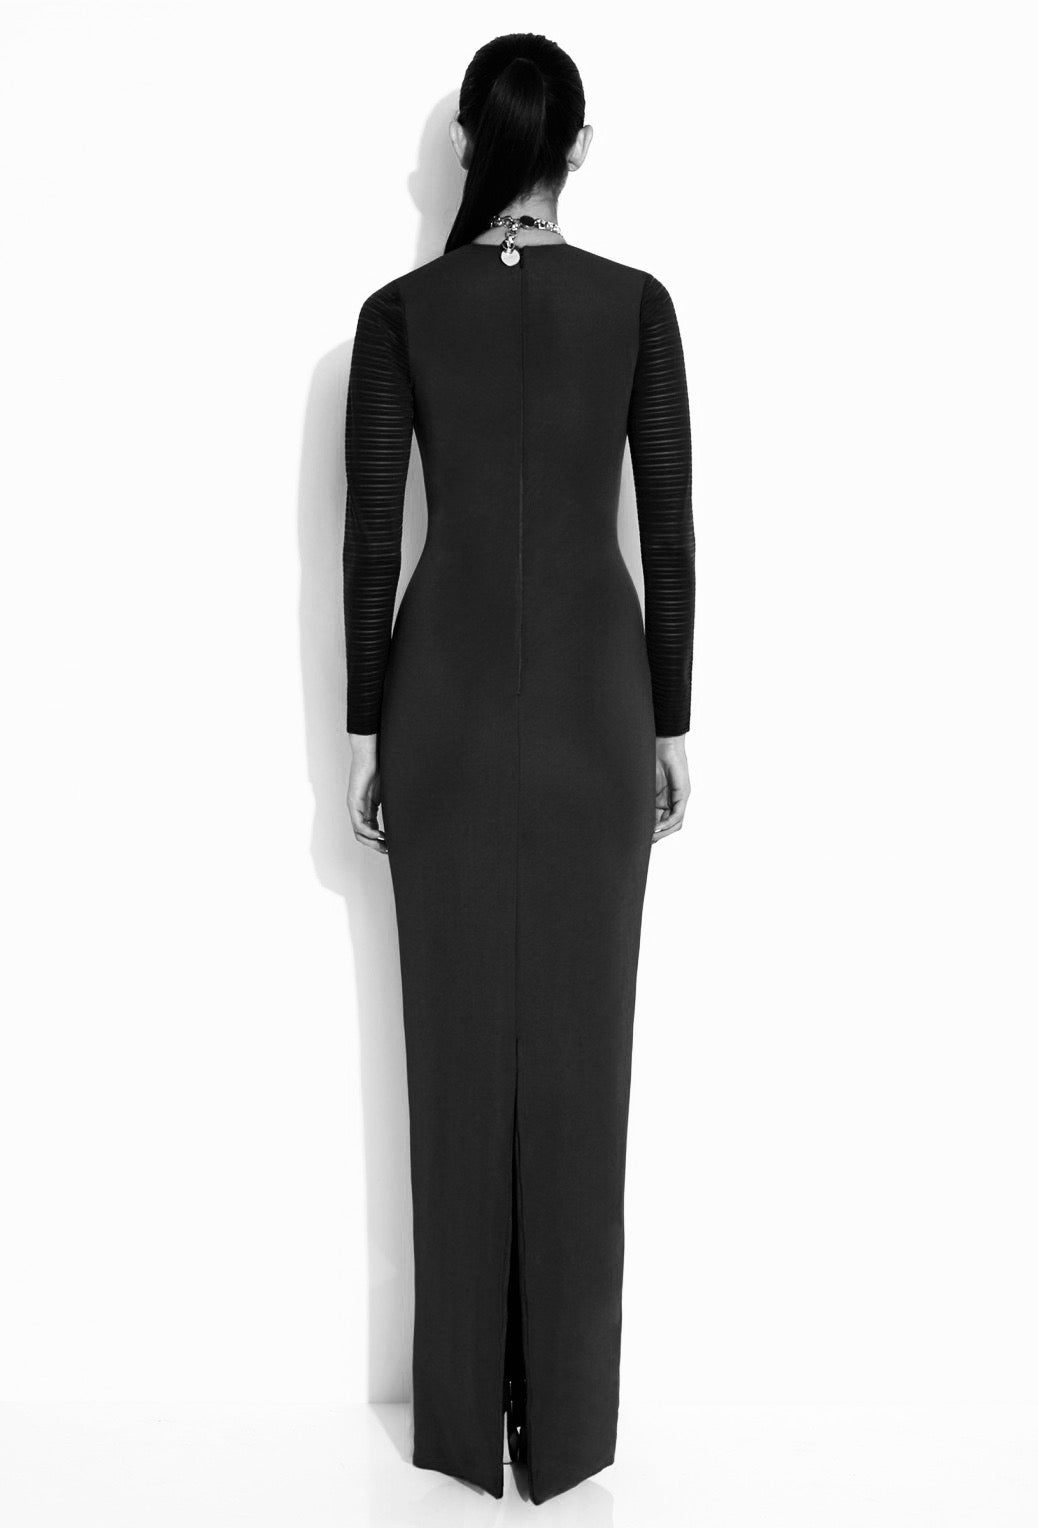 Black long sleeve formal wear with plunge